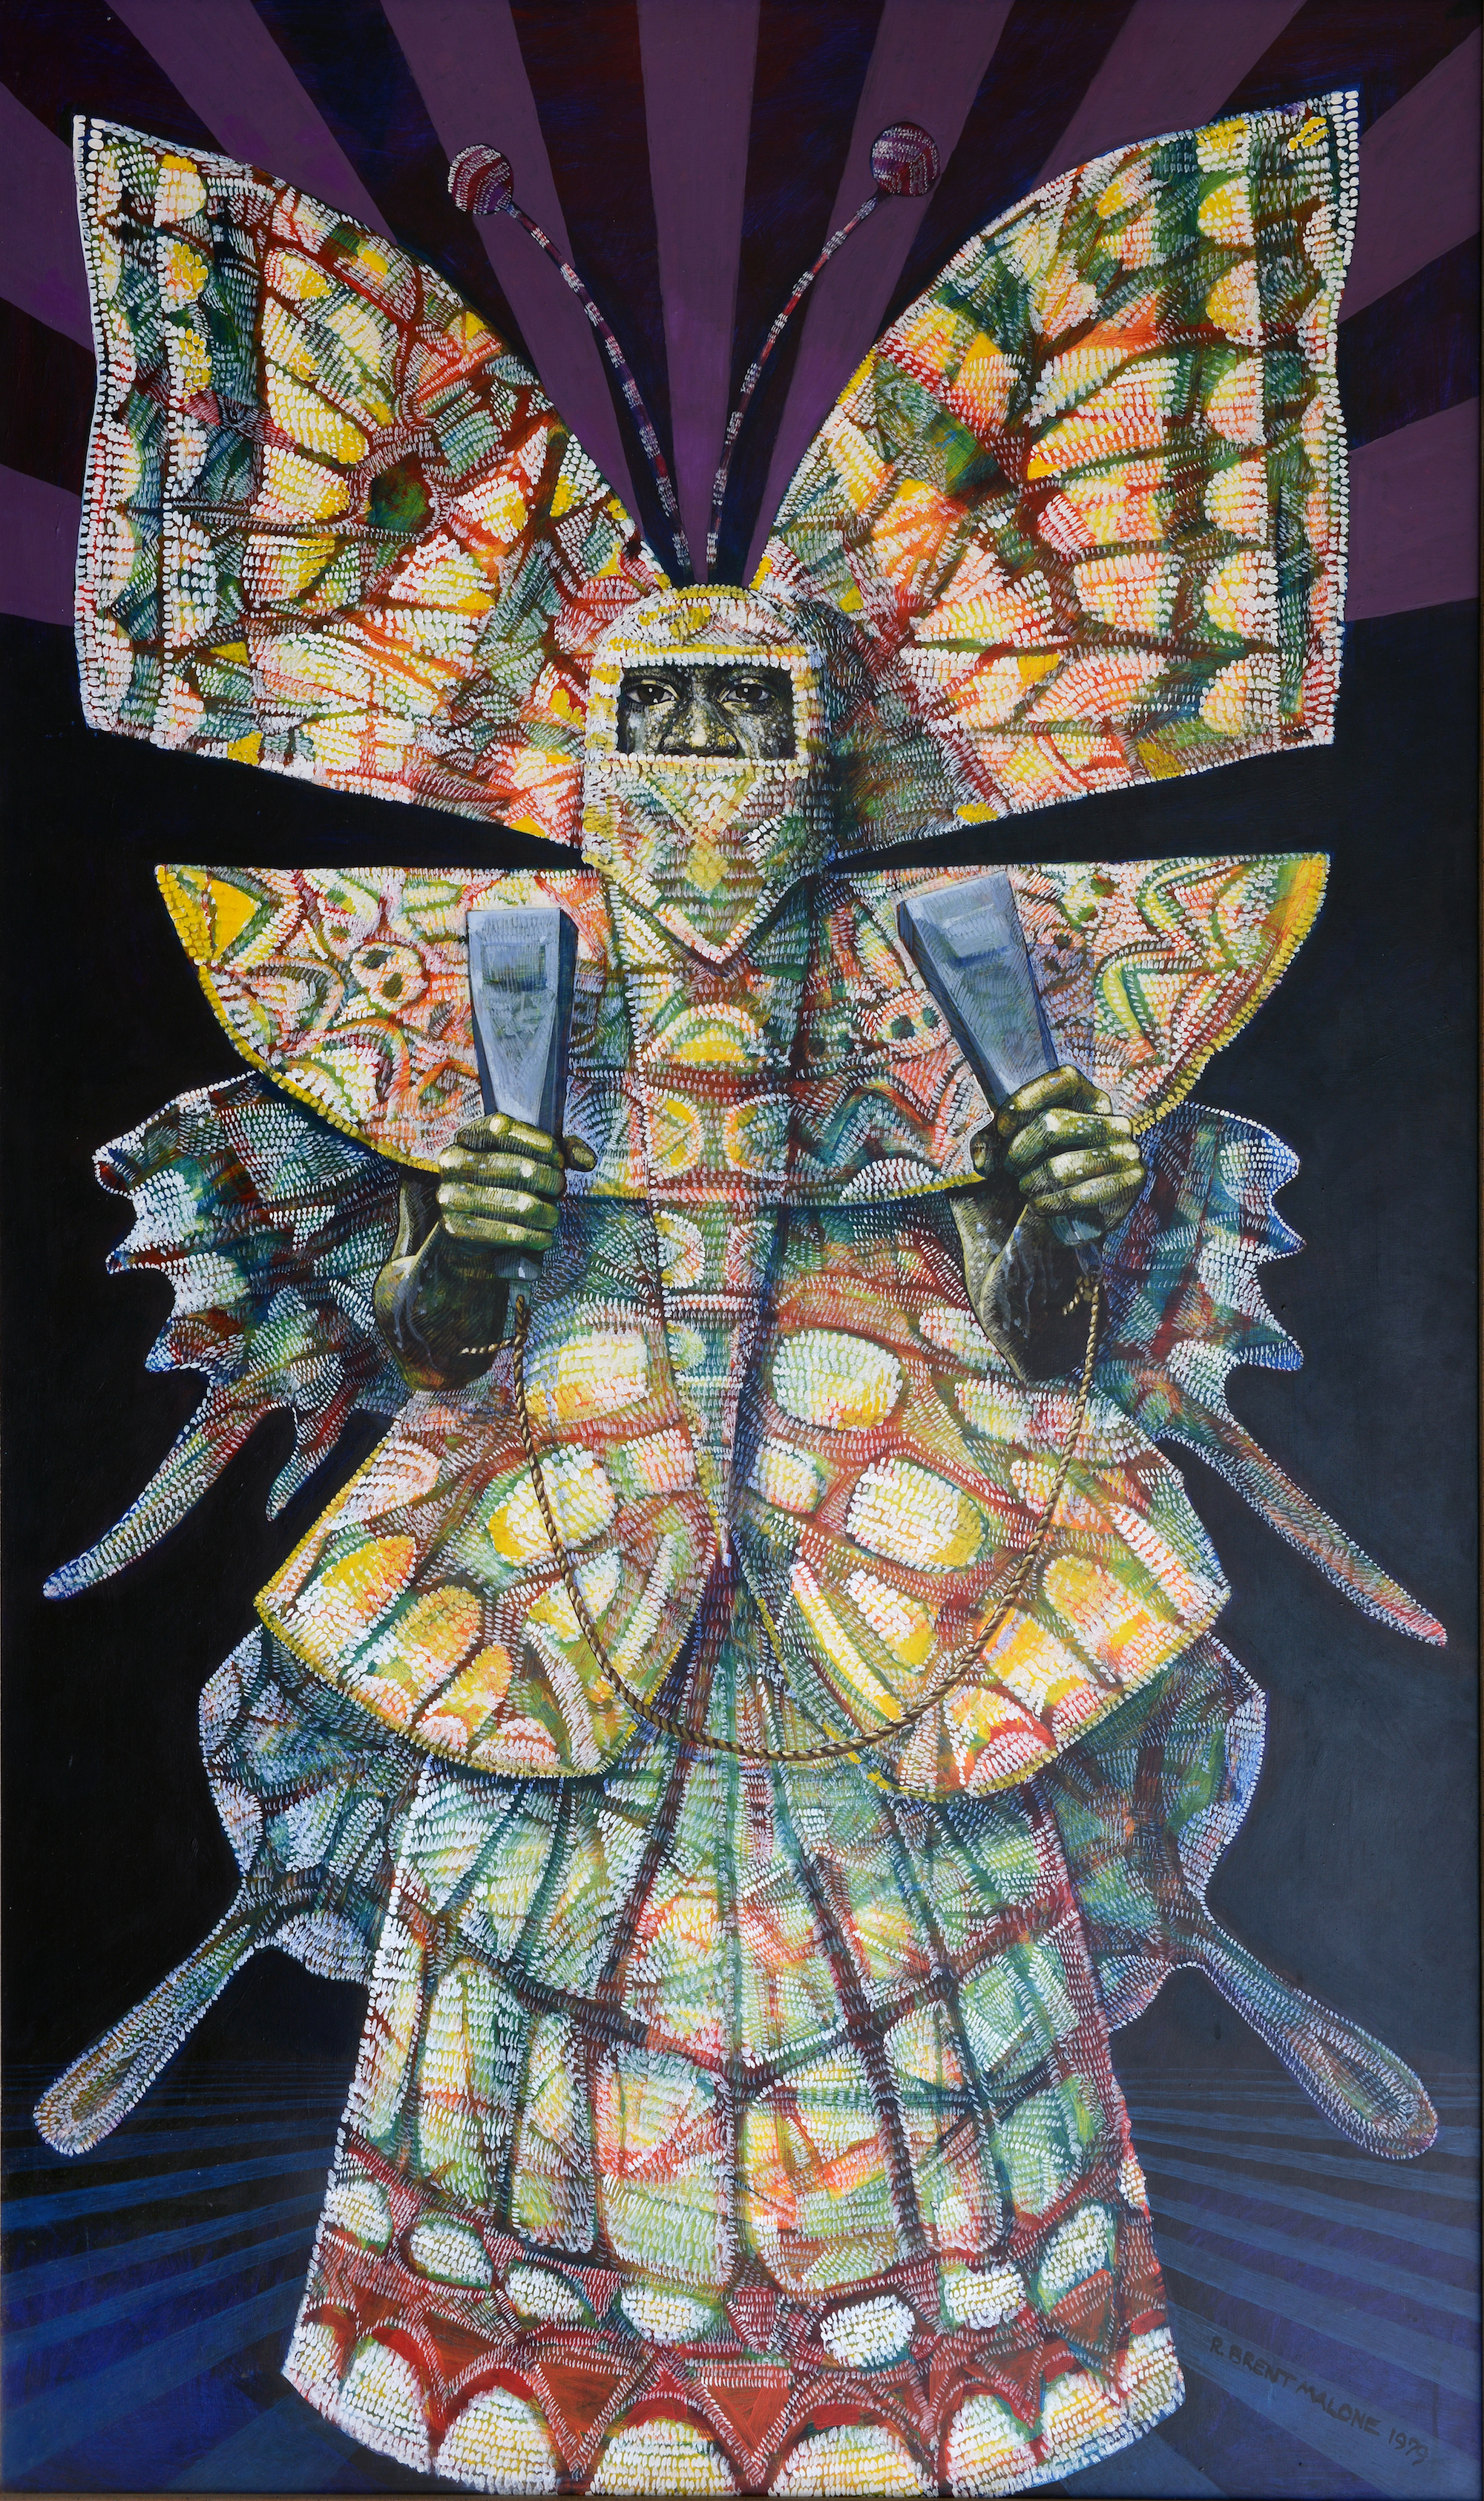 """""""Metamorphosis"""" (1979), R Brent Malone, acrylic on hardboard, 60 x 36. Part of the National Collection, purchased using the Membership Fund 2005-2006, currently on display in the NAGB's Permanent Exhibition """"Revisiting An Eye For the Tropics""""."""